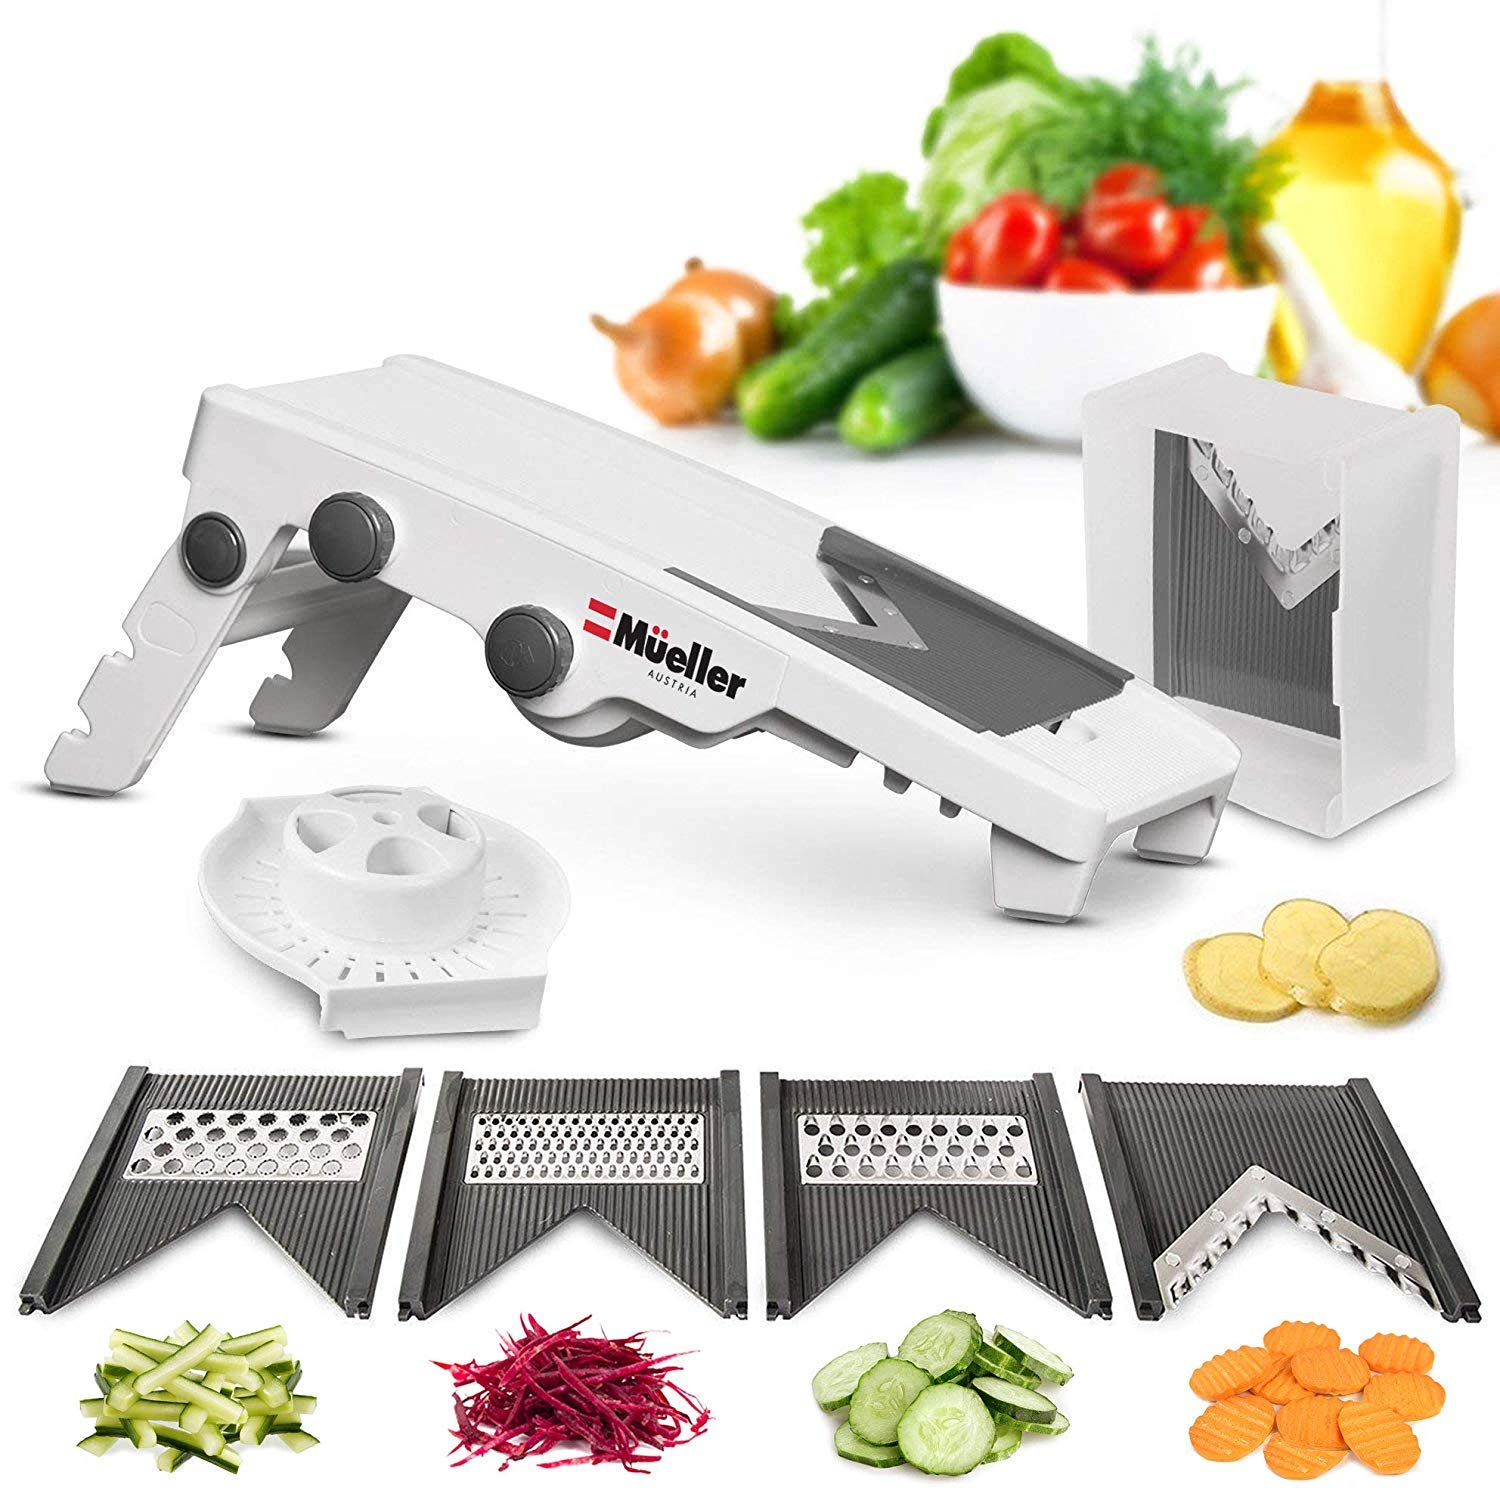 Mueller Austria V-Pro Multi Blade Adjustable Mandoline Slicer and Vegetable Julienner with Precise Maximum Adjustability: Vegetable Slicer and French Fry Cutter, Food Slicer, Vegetable Julienne.